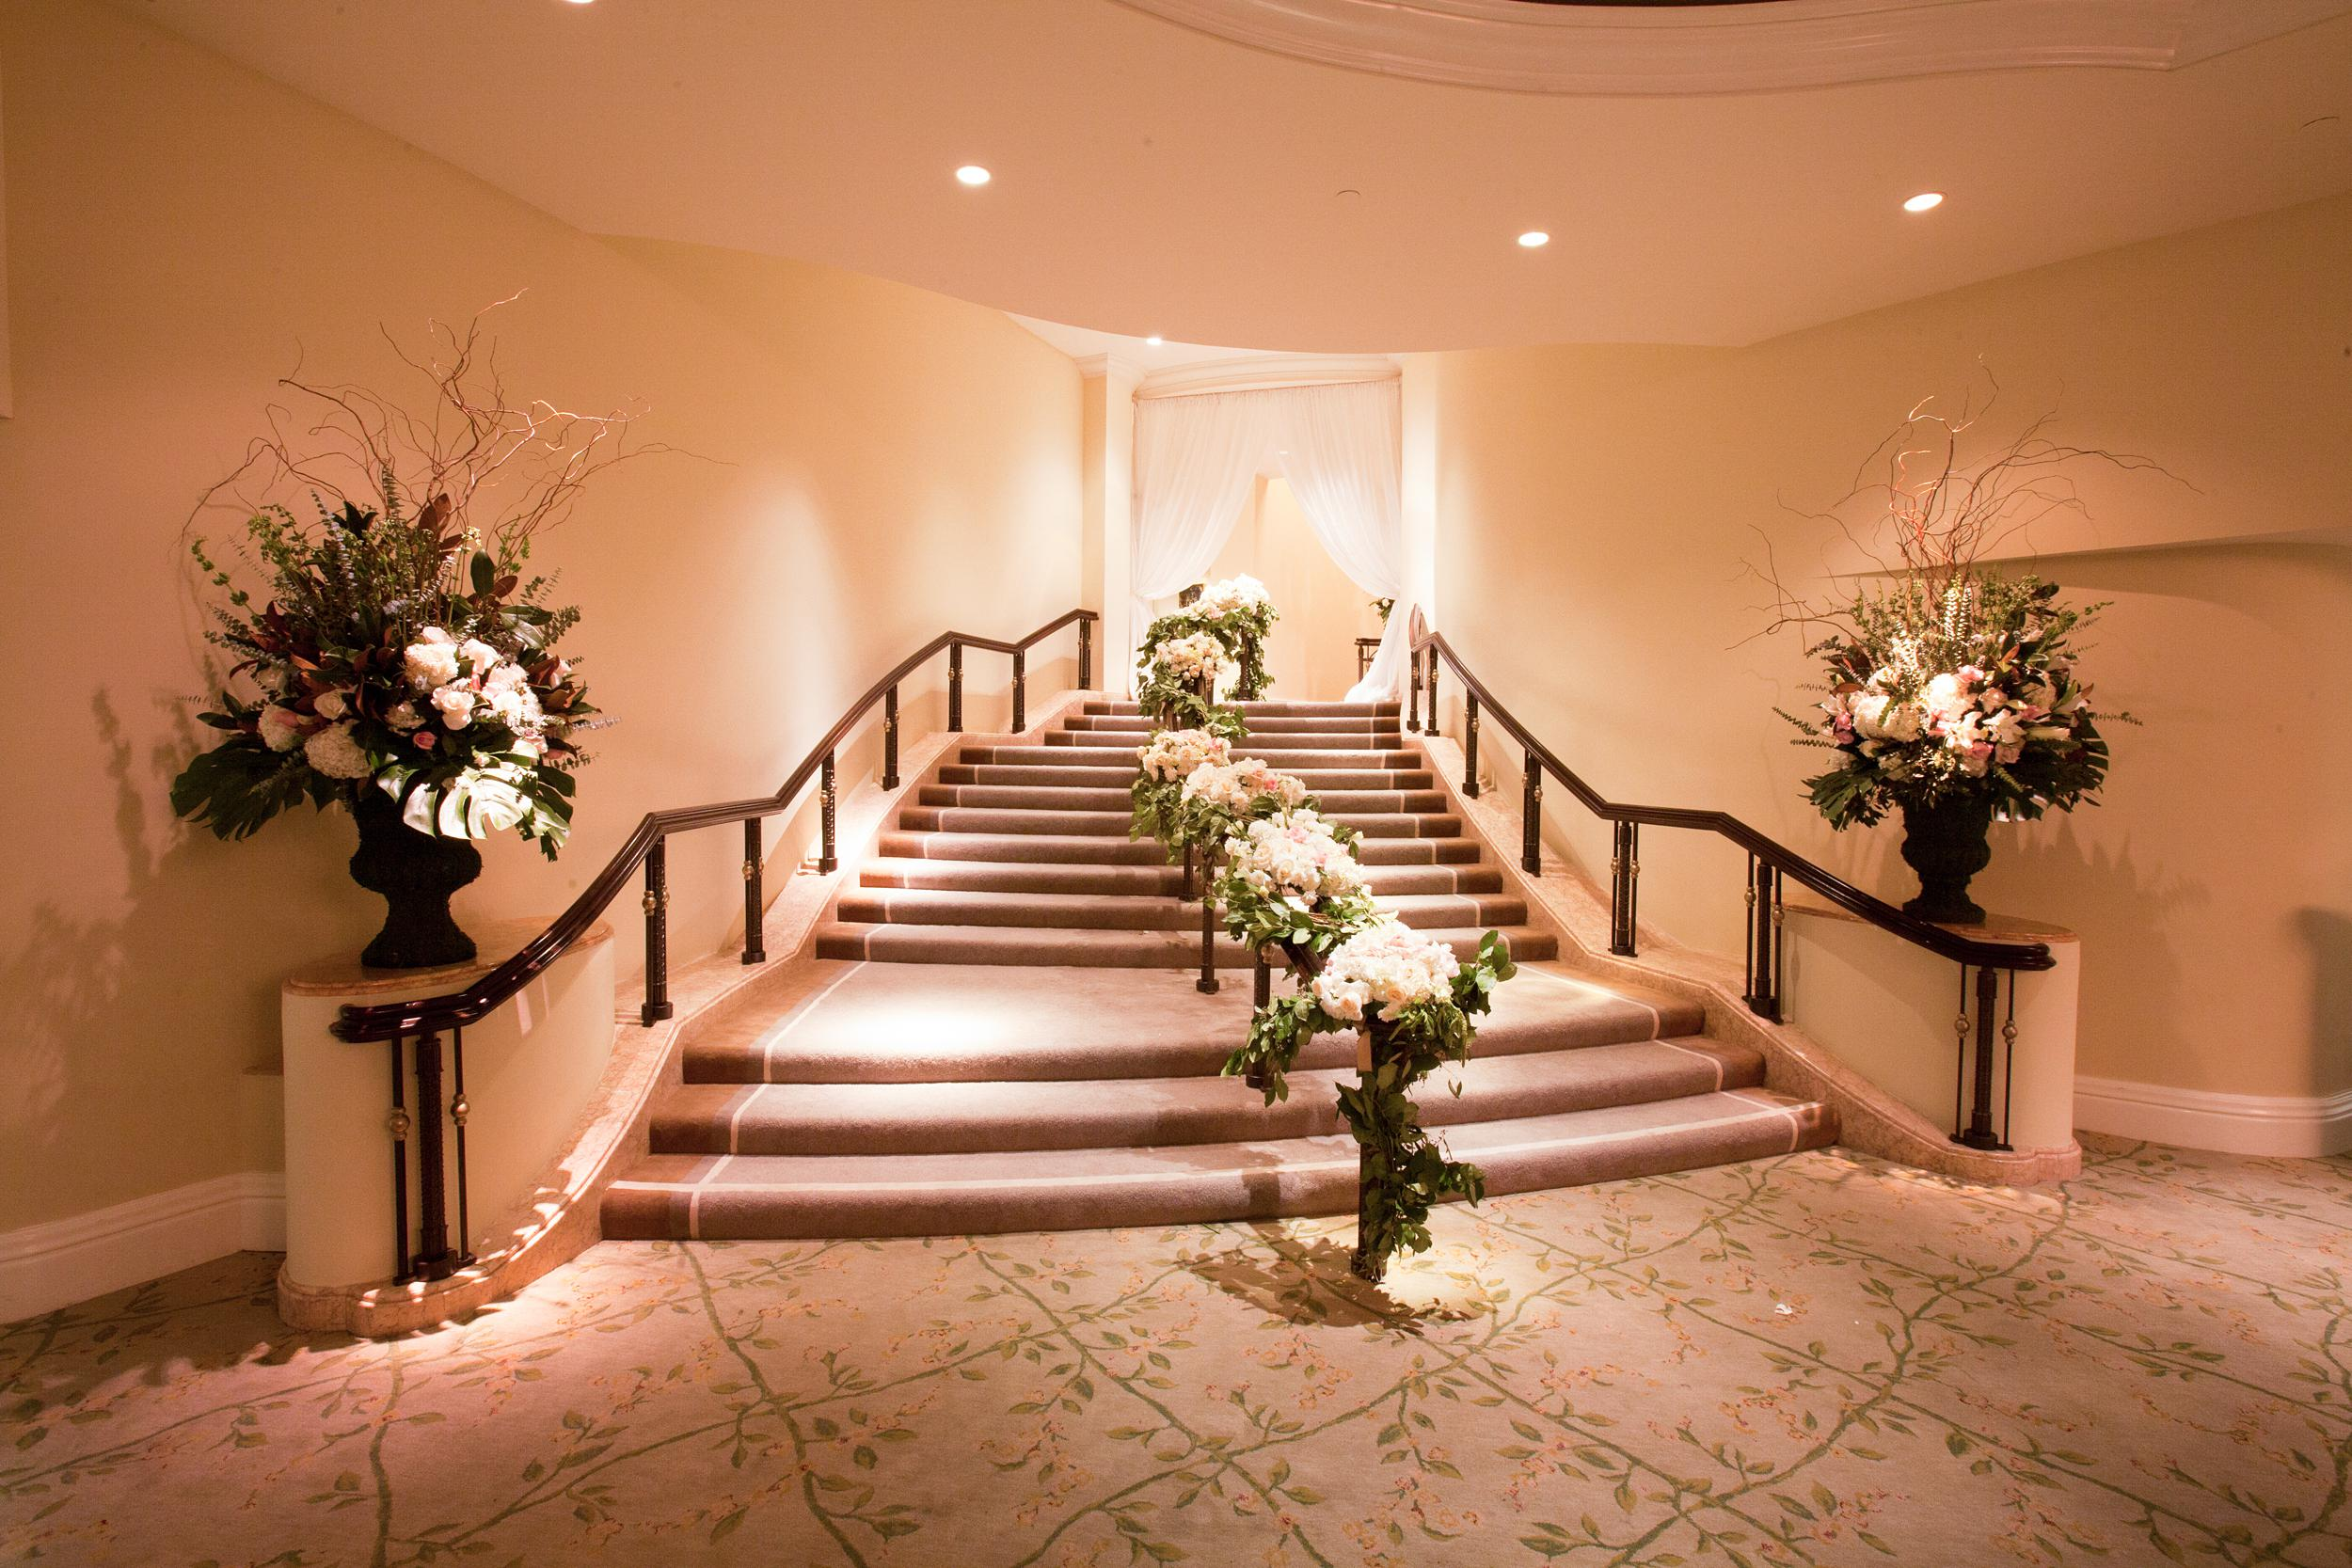 beverly-hills-hotel-wedding-HB-19.jpg